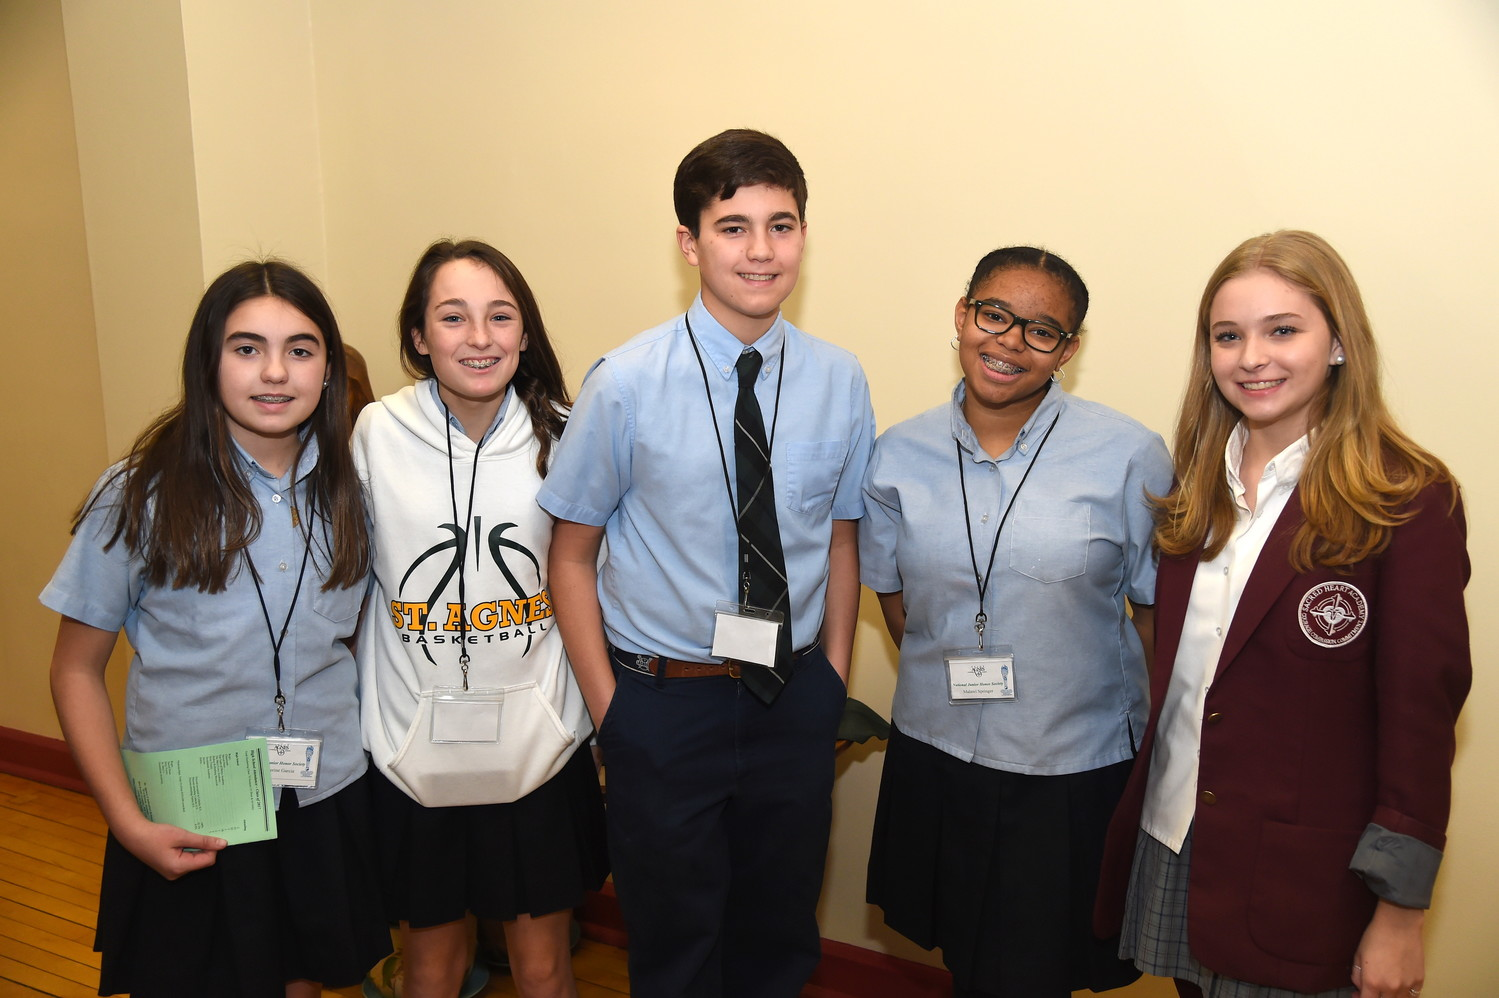 Catherine Garcia, left, Cate Bendowski, James Garcia, Malawi Springer and Abigail Story served as tour guides during St. Agnes Cathedral School's Open House on Jan. 28, which kicked off Catholic Schools Week.